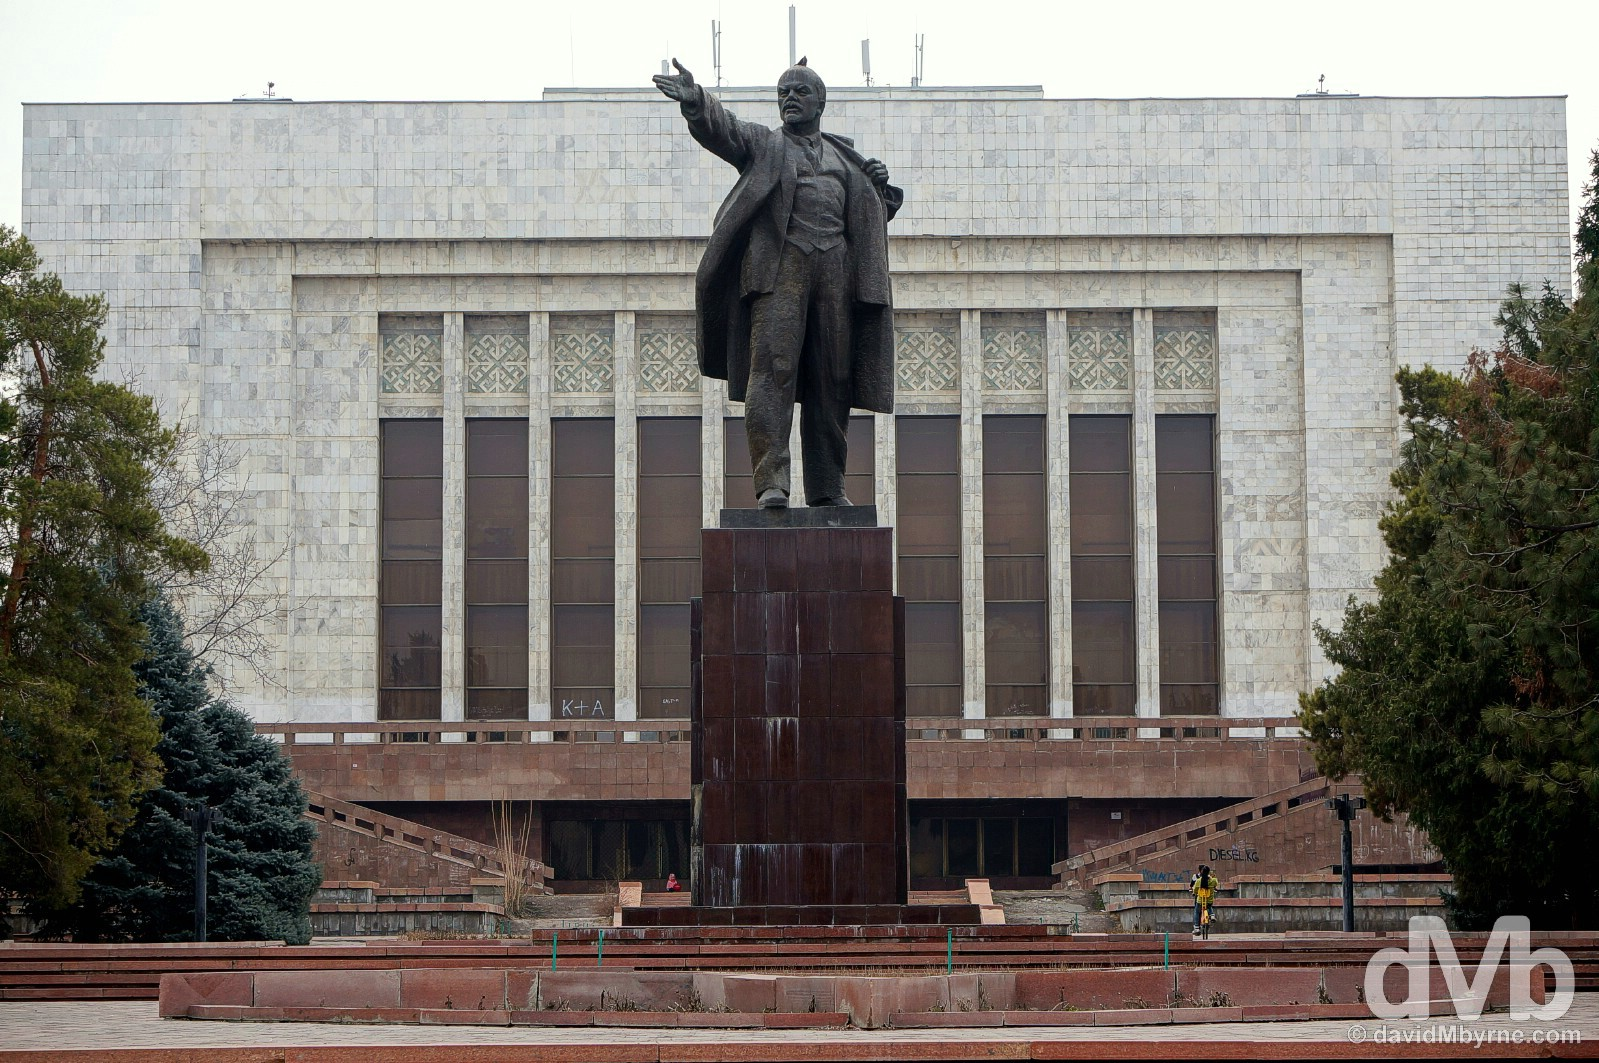 The relocated Lenin statue off Ala-Too Square in central Bishkek, Kyrgyzstan. February 23, 2015.